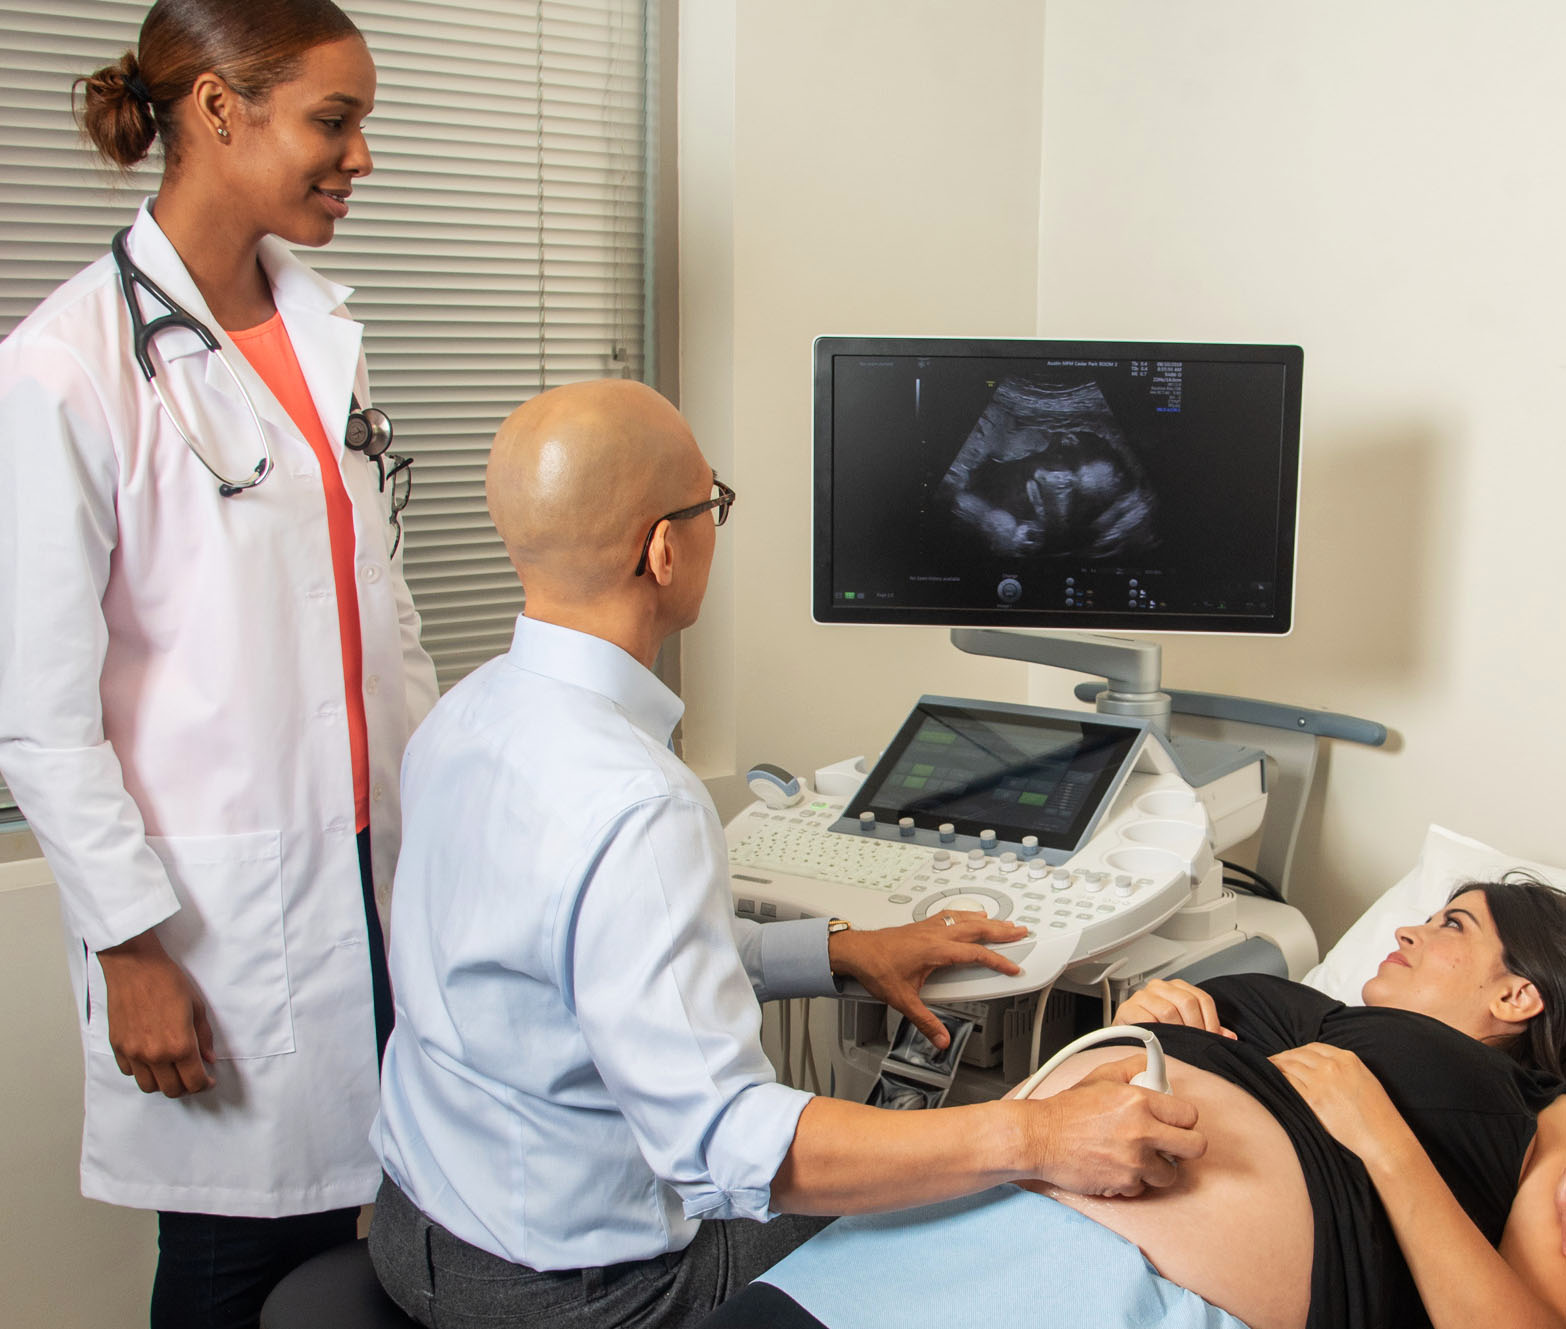 OUR MODEL - We're more than just sonography. Our team is dedicated to the growth of our sonographers and our partners — this is what we call the BB Imaging difference.